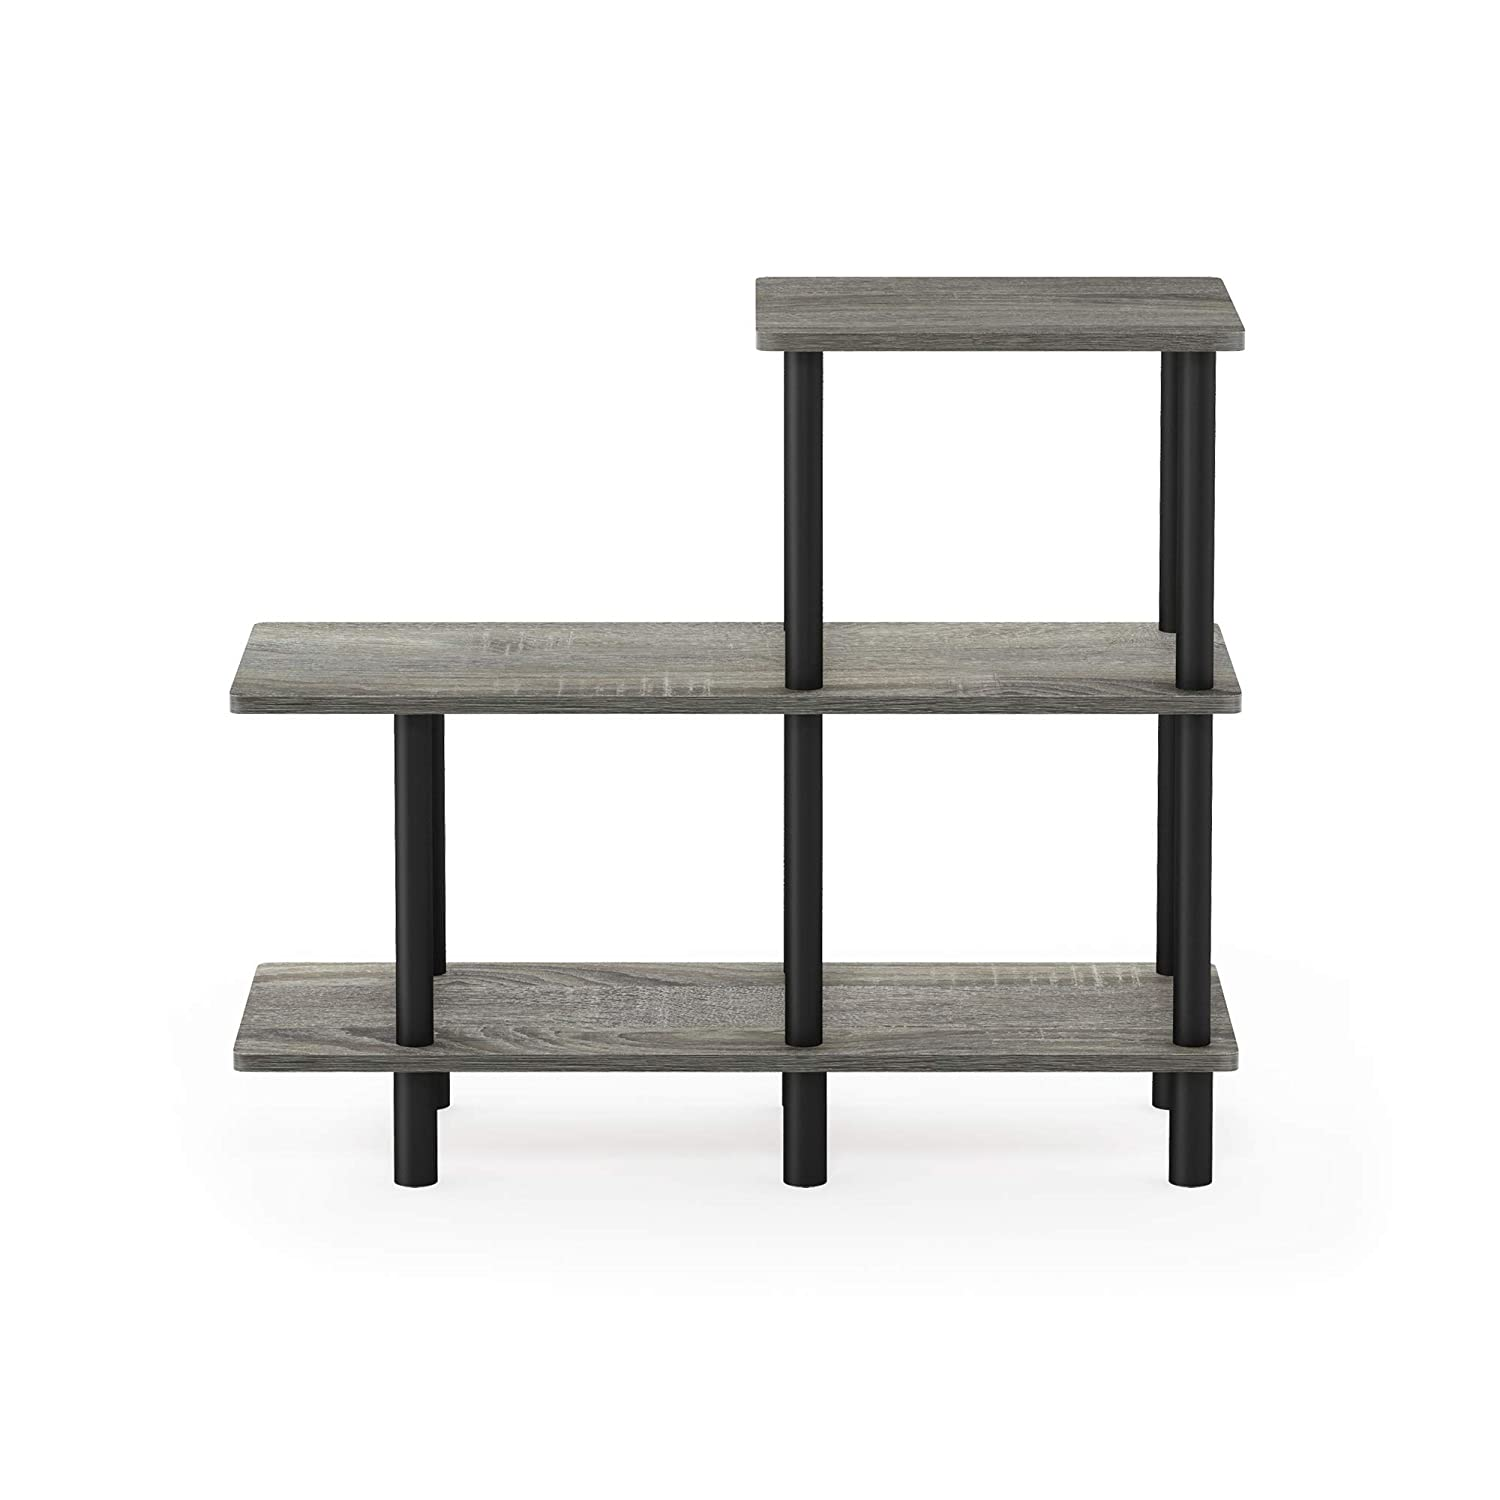 Furinno Turn-N-Tube 3-Tier Cube Ladder Shelf, French Oak Grey/Black